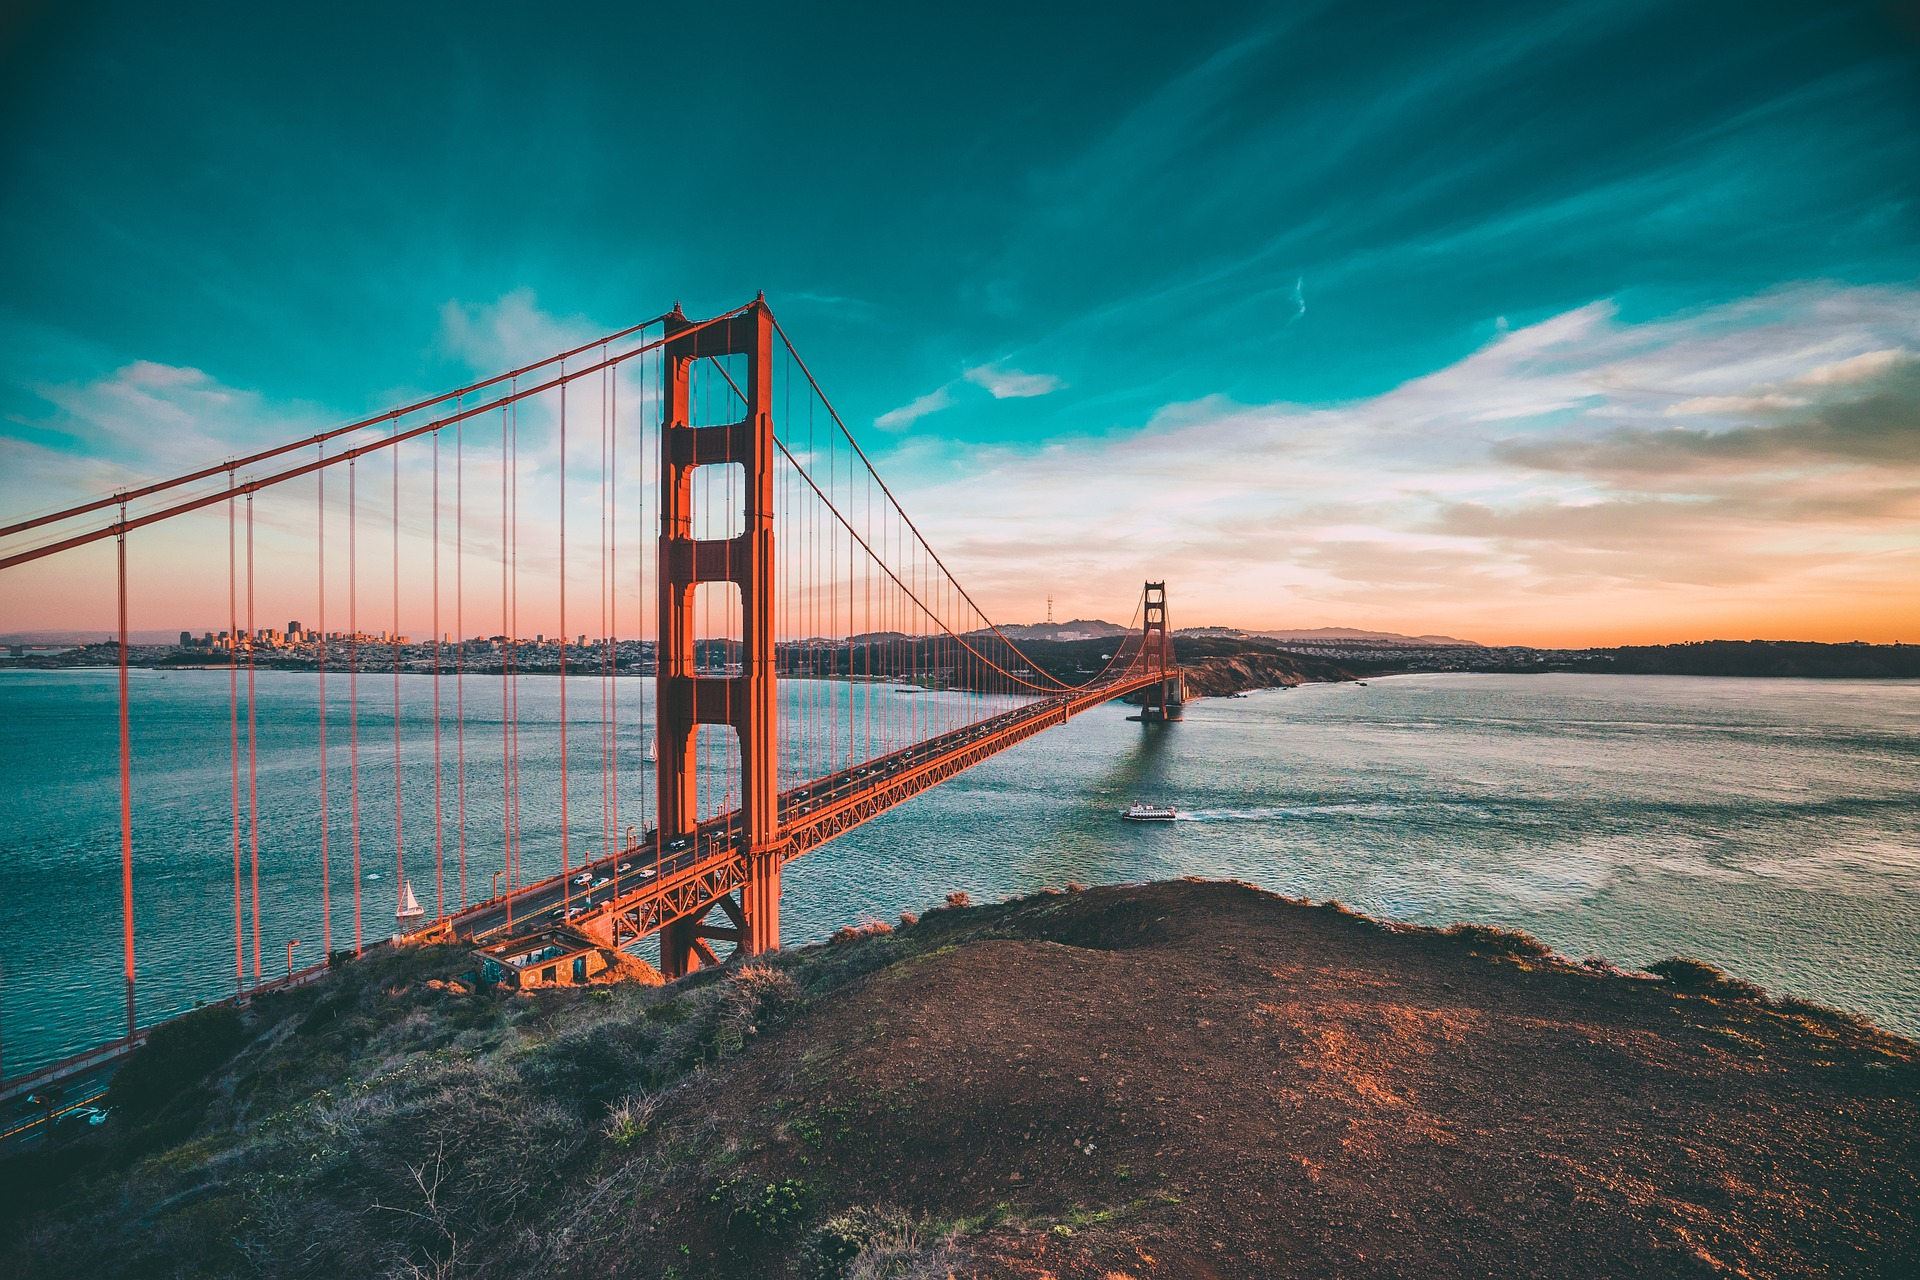 golden-gate-bridge-pont-san-francisco-ville-mer-ouest-etats-unis-travel-for-you